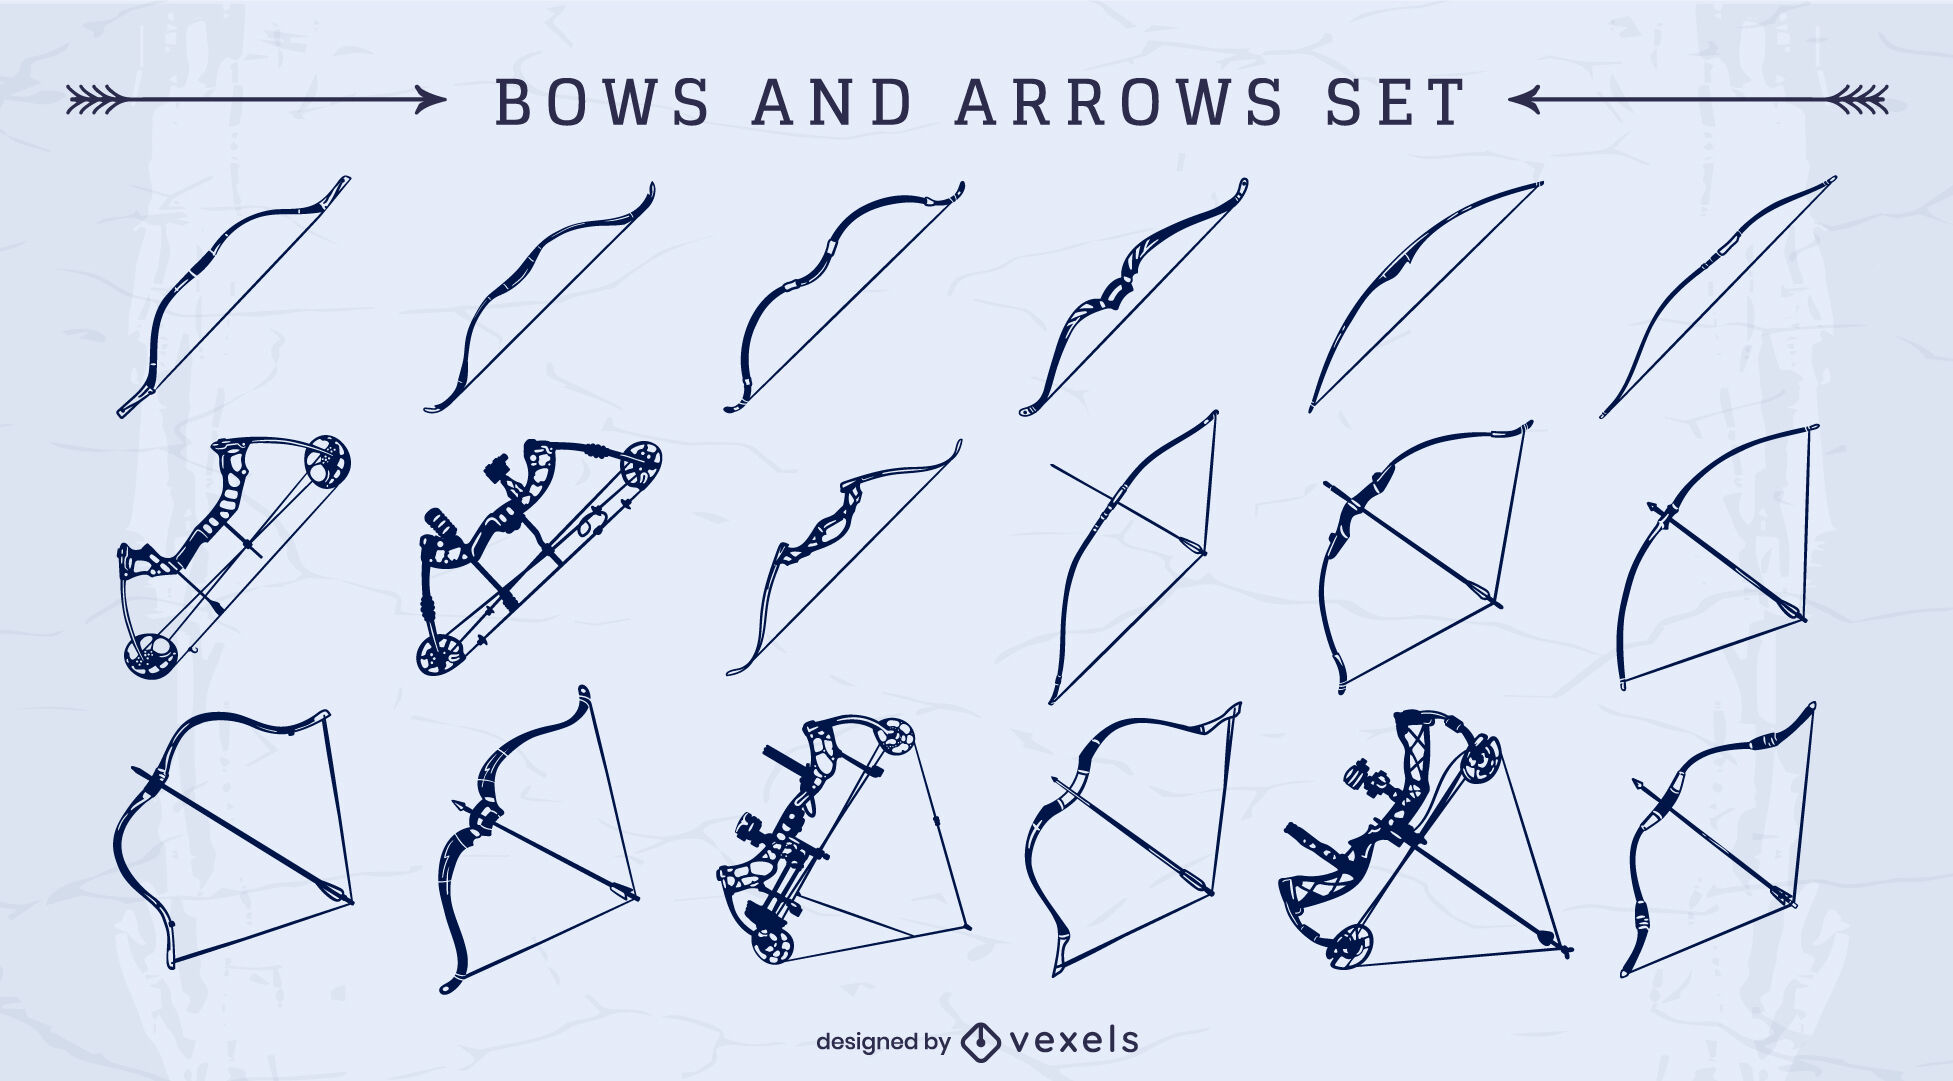 Bows and arrows cut out set